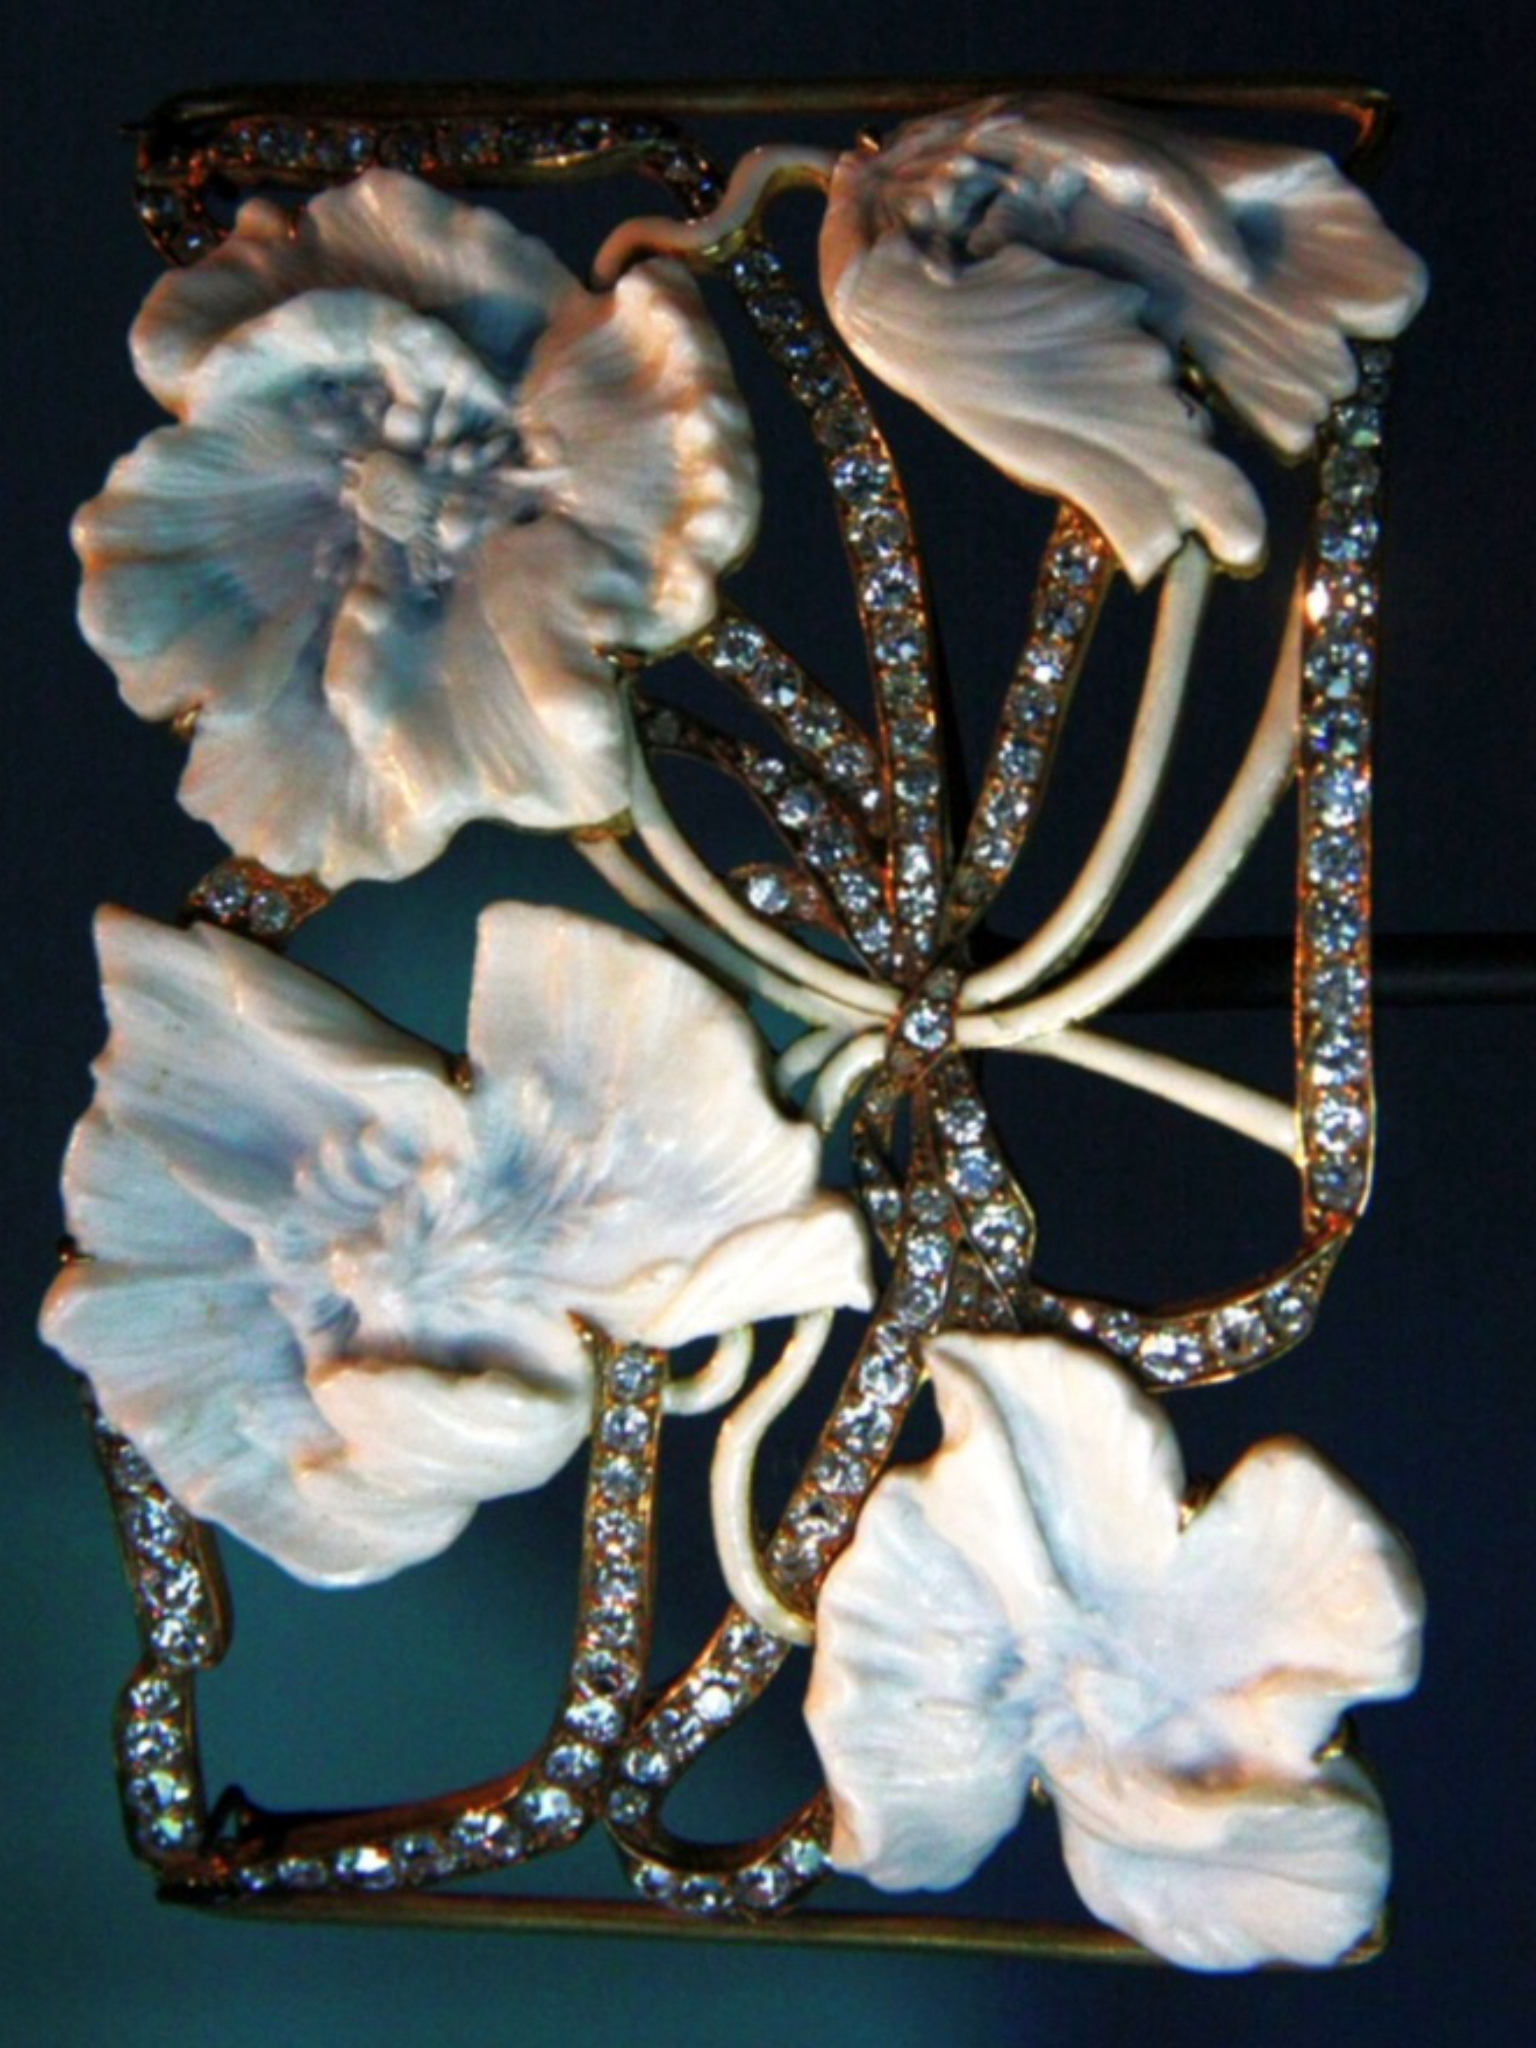 René Lalique 'Bunch of Anemones' aka 'Haw-thorne' Necklace Plate (1902-03): ivory/ enamel/ diamonds/ gold - private collection | Sokleine, flickr.com